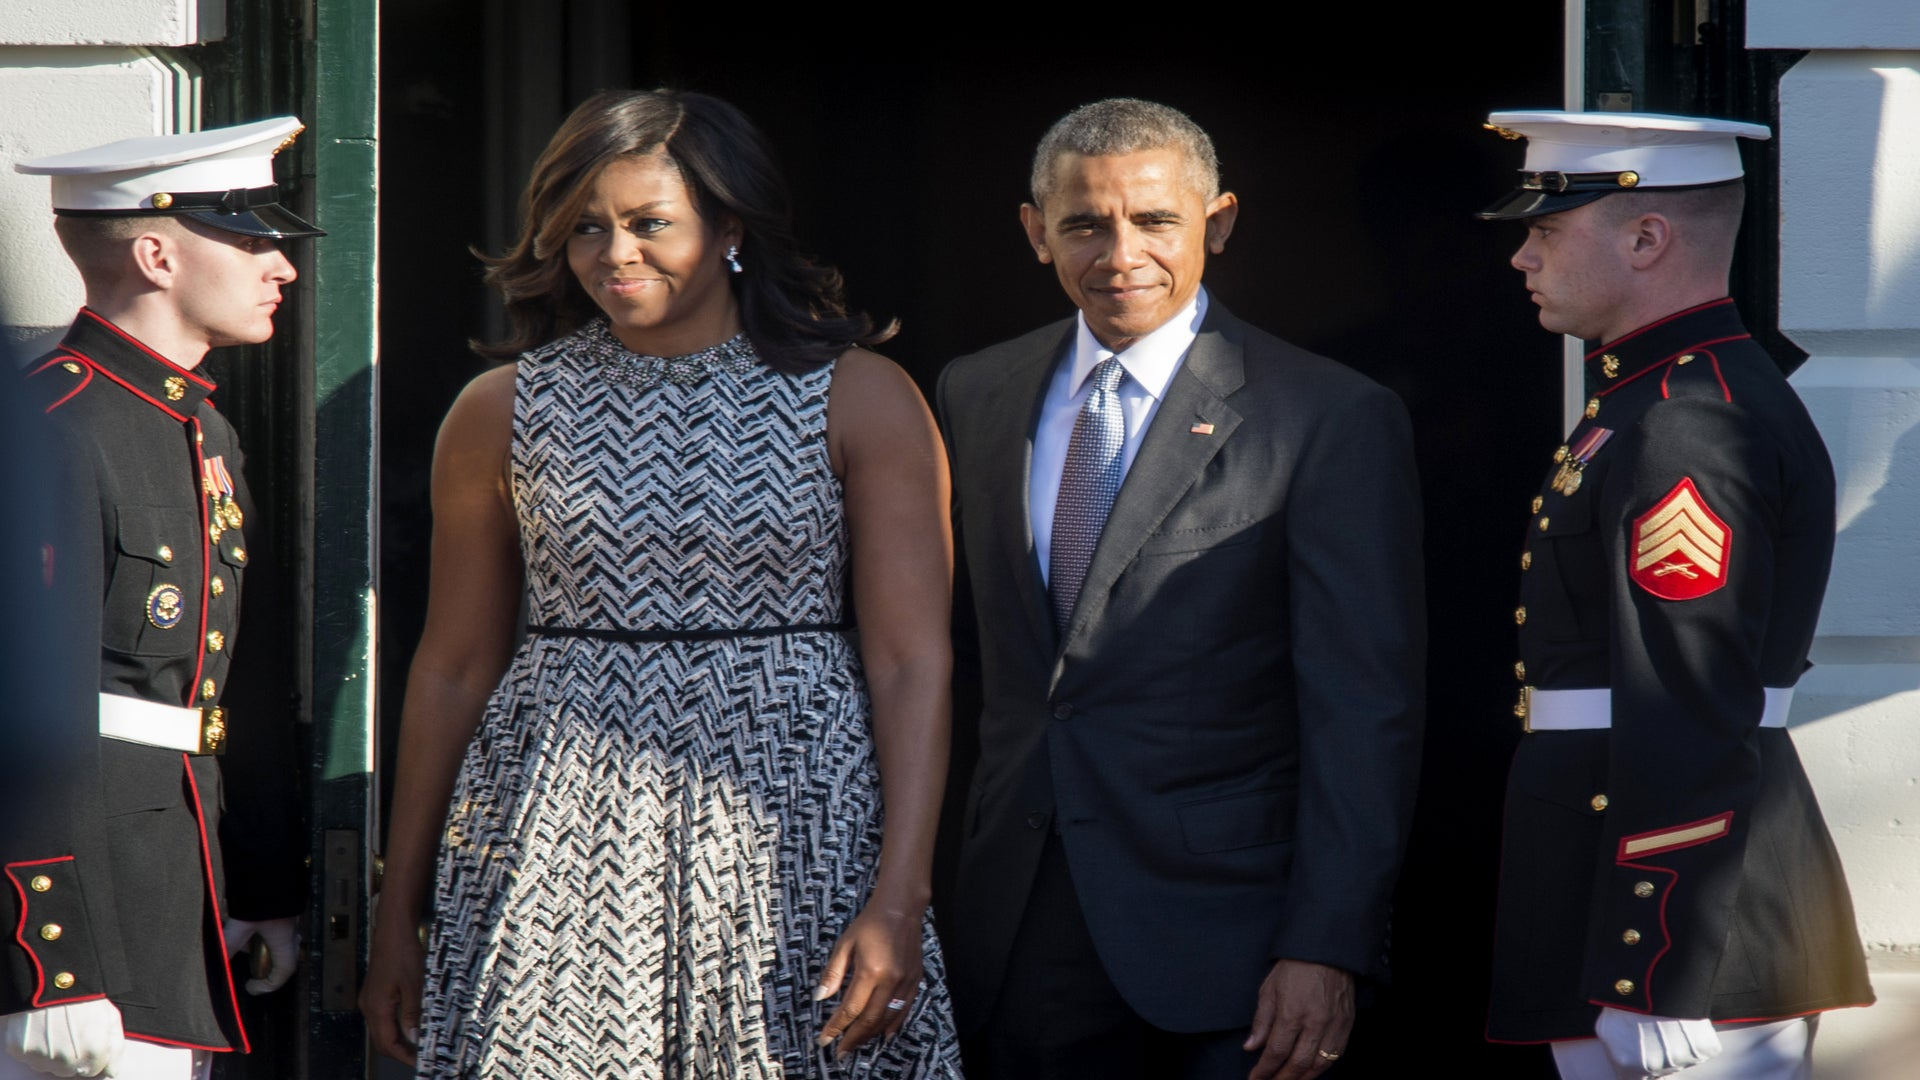 President Obama Just Wished FLOTUS Happy Birthday In The Sweetest Way Possible